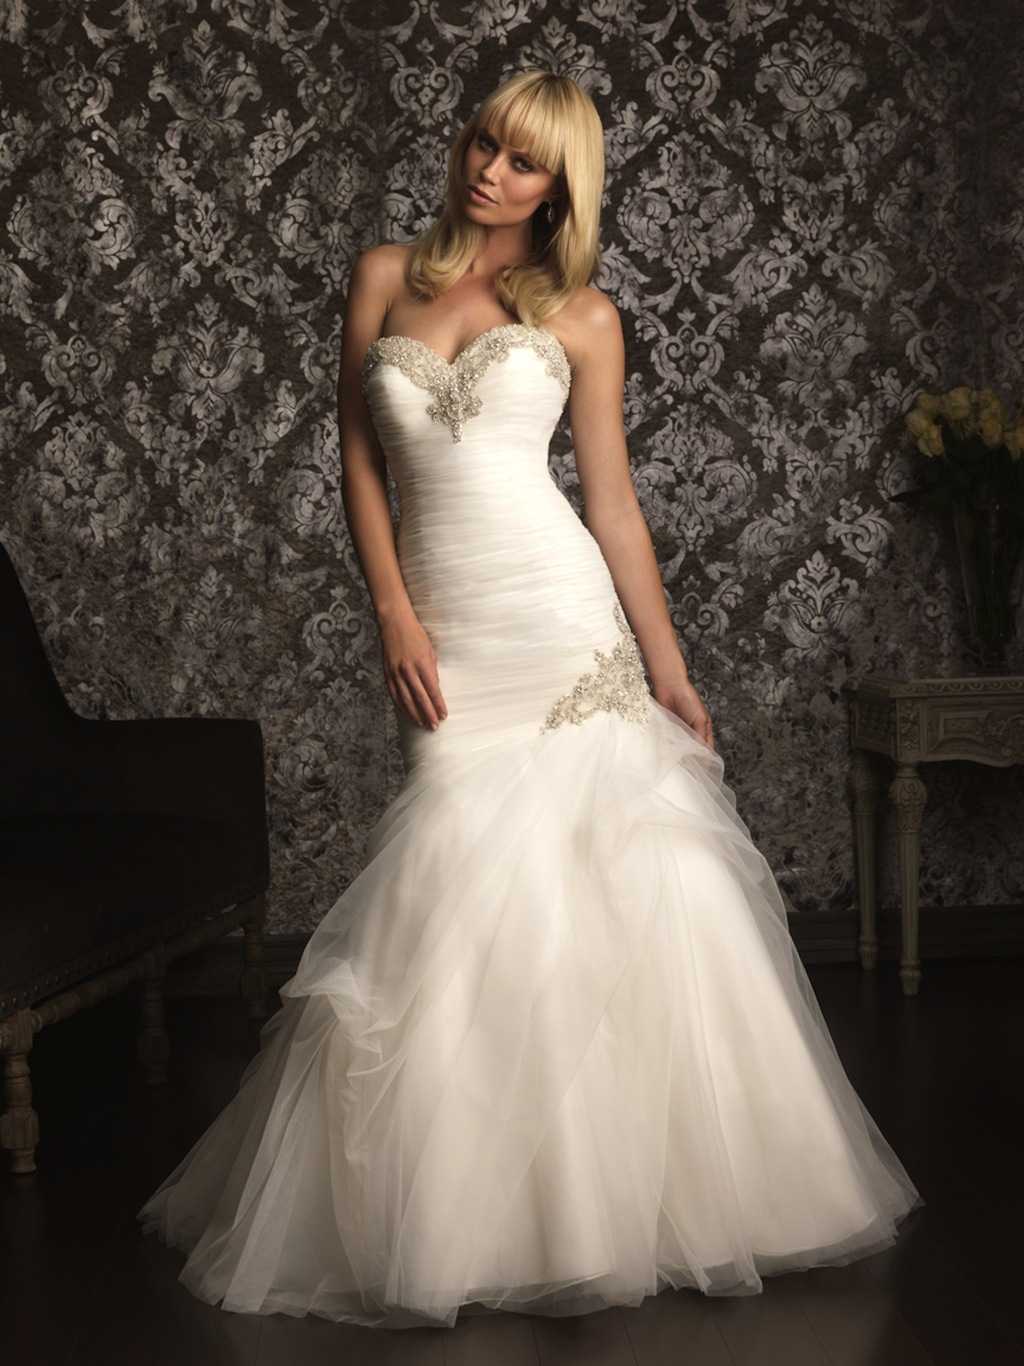 2013 Allure Bridals Wedding Dress Bridal Gown Allure Collection 2013 9002